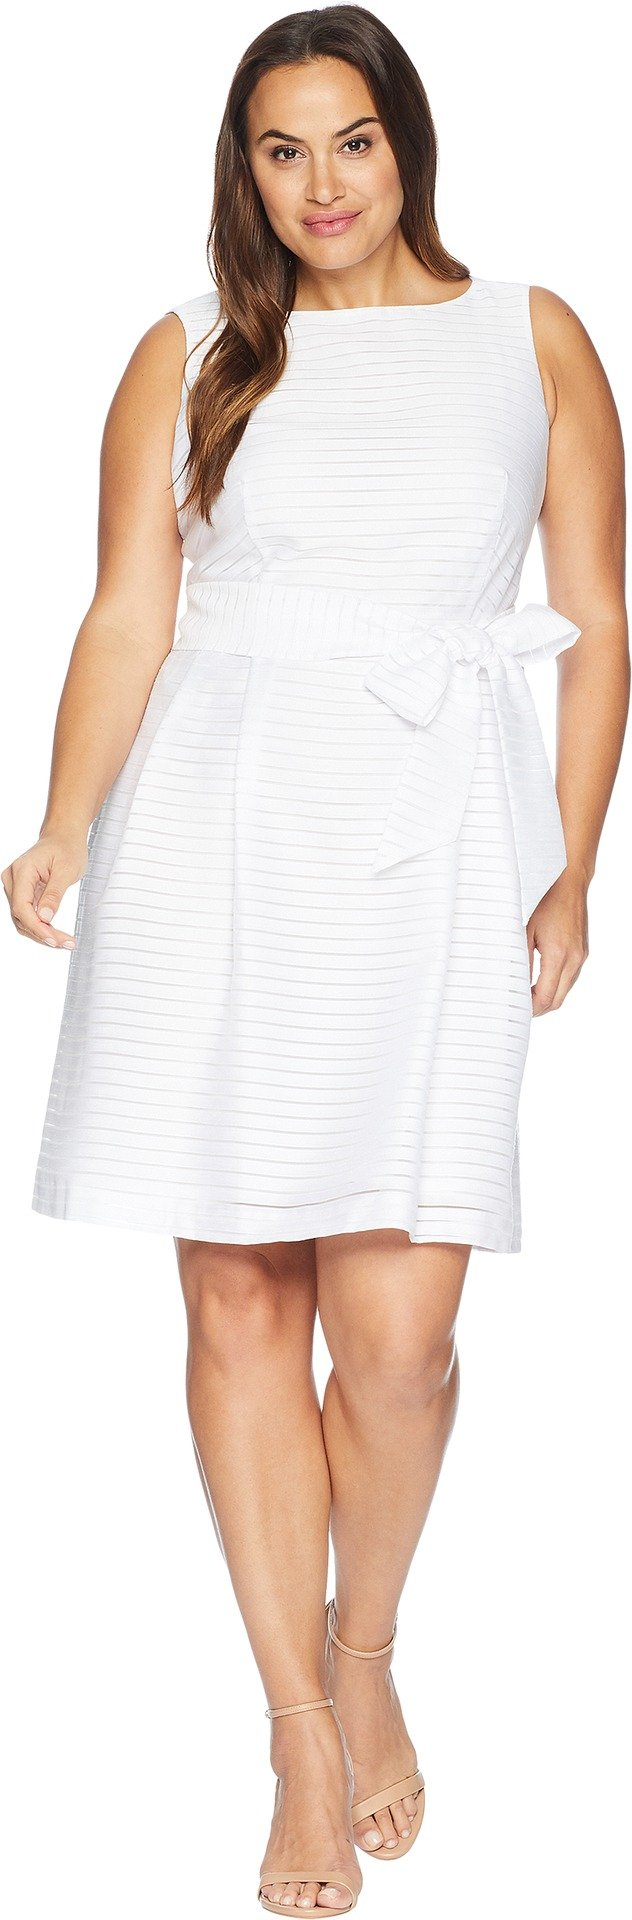 Anne Klein Women's Plus Size Solid Shadow Stripe Fit and Flare Dress, White, 22W